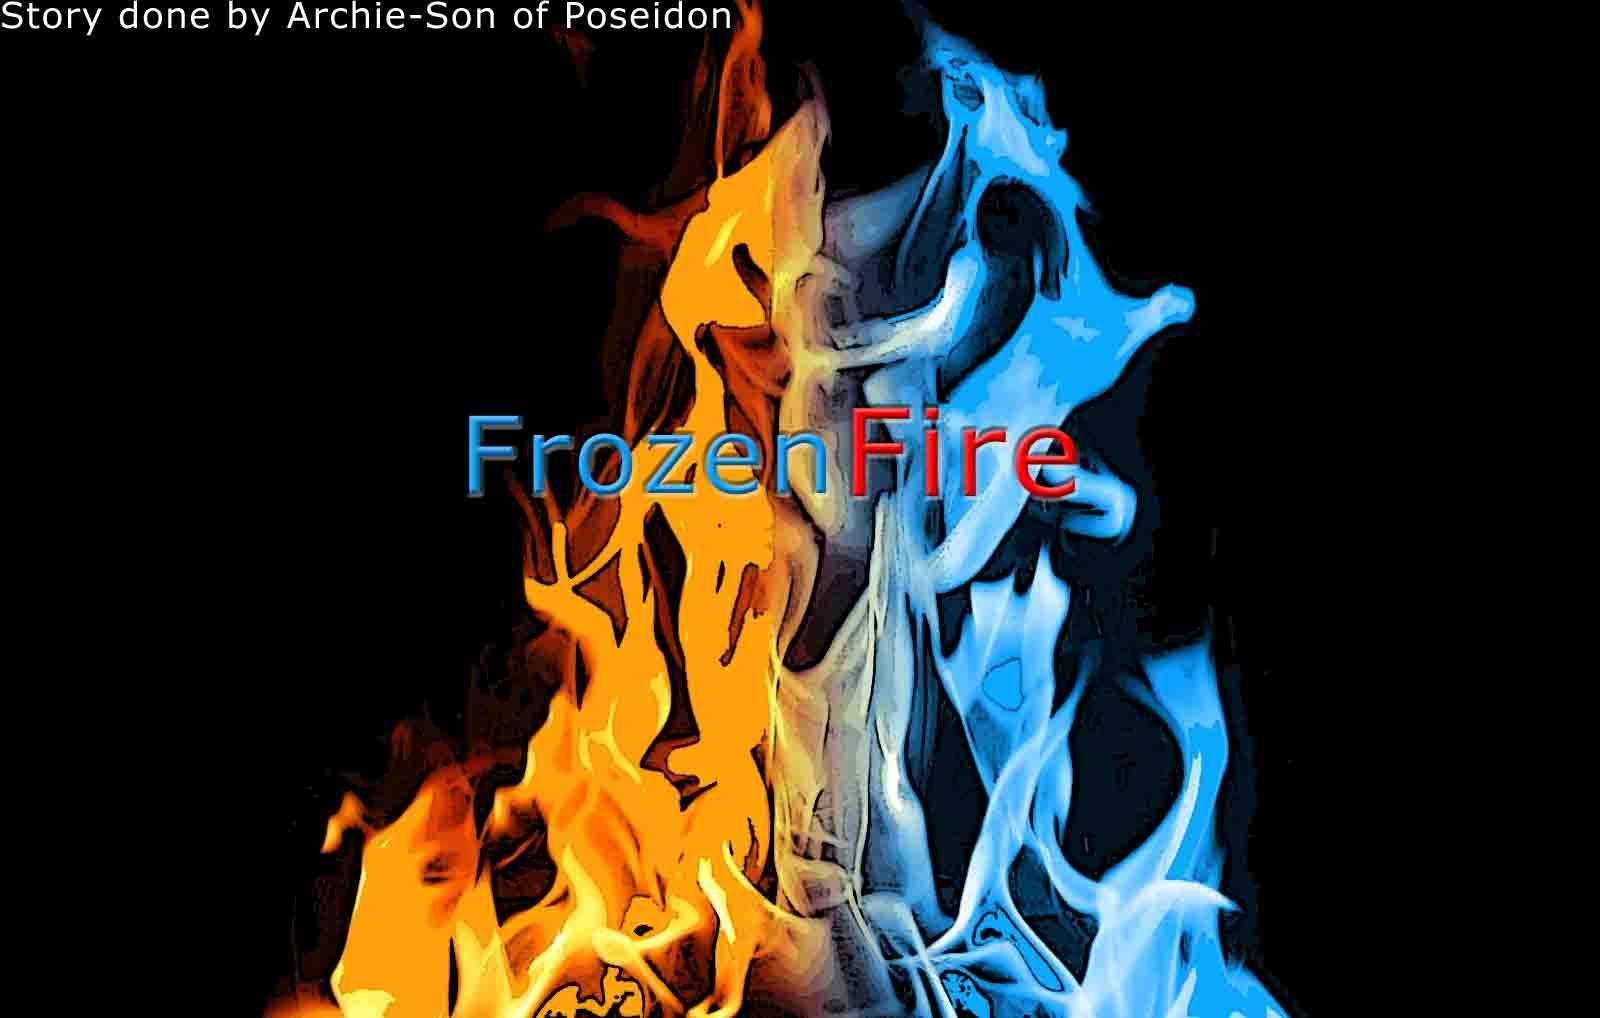 Fire or ice?